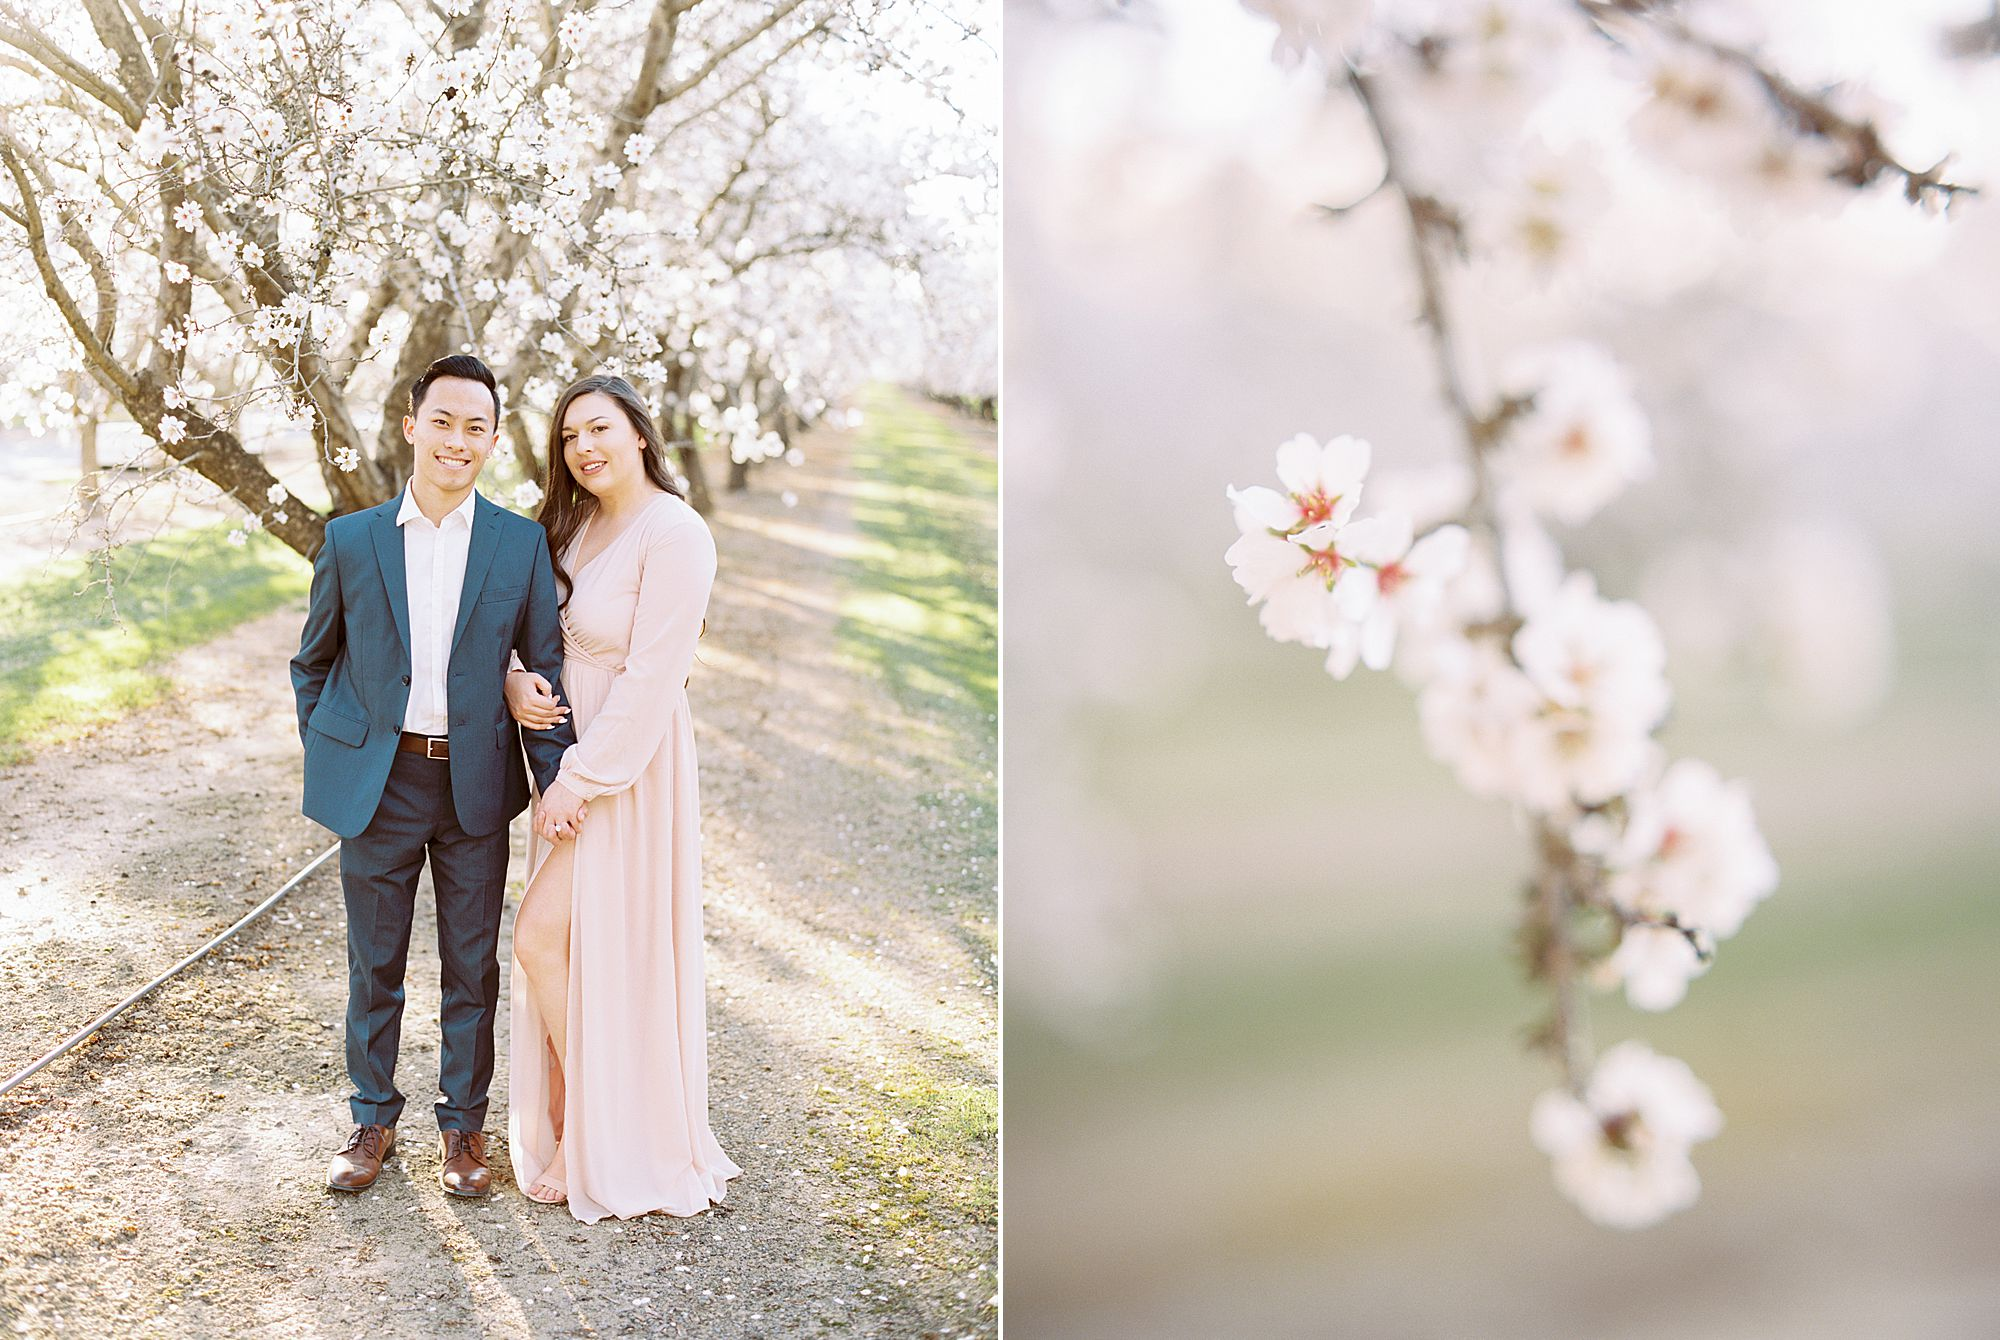 Almond Orchard Engagement Session - Caley and Tyler - Lone Oak Wedding - Ashley Baumgartner - Almond Blossom_0001.jpg